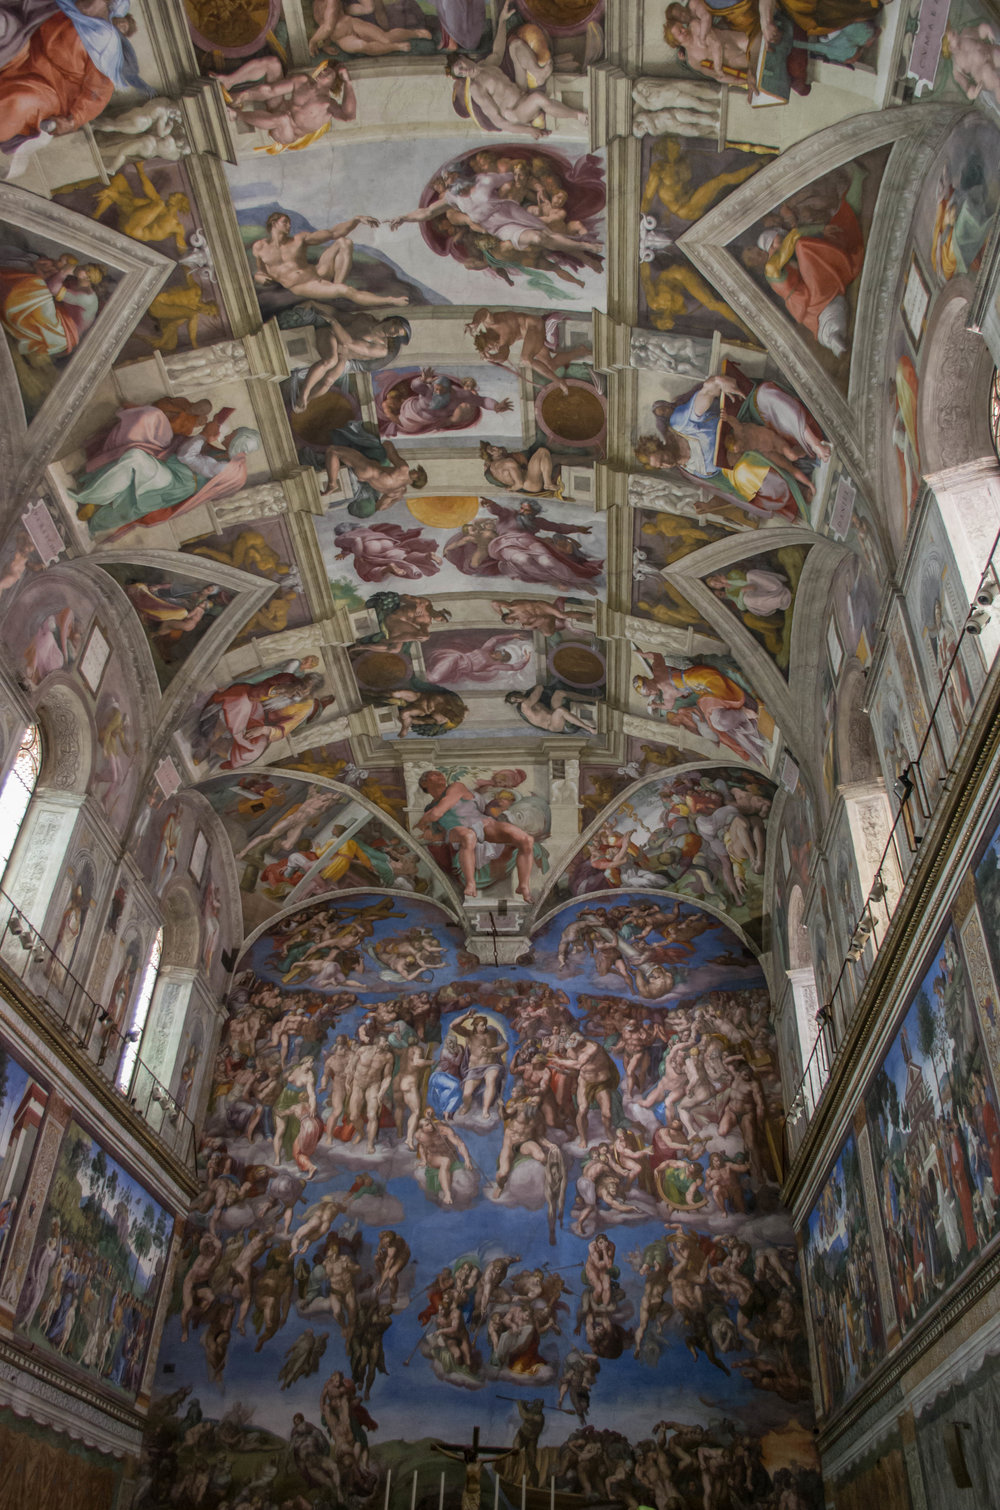 Michelangelo's frescoes on the ceiling and end wall of the Sistine Chapel